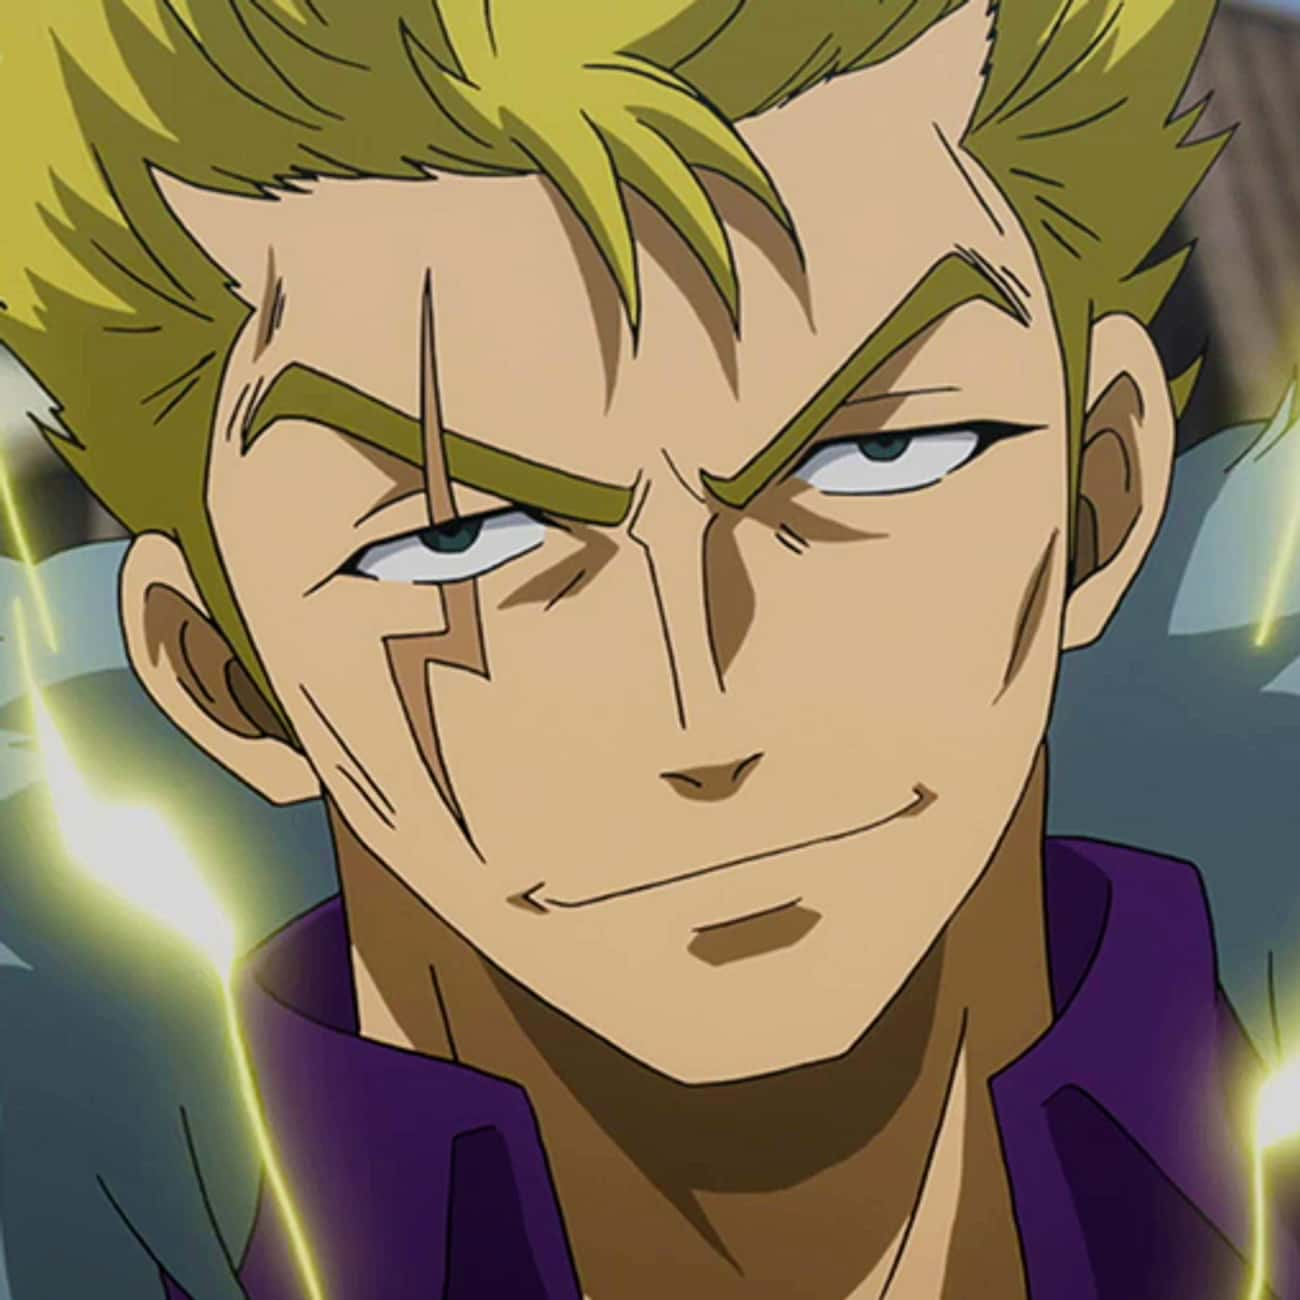 We're Just Two Men is listed (or ranked) 2 on the list The Best Laxus Dreyar Quotes